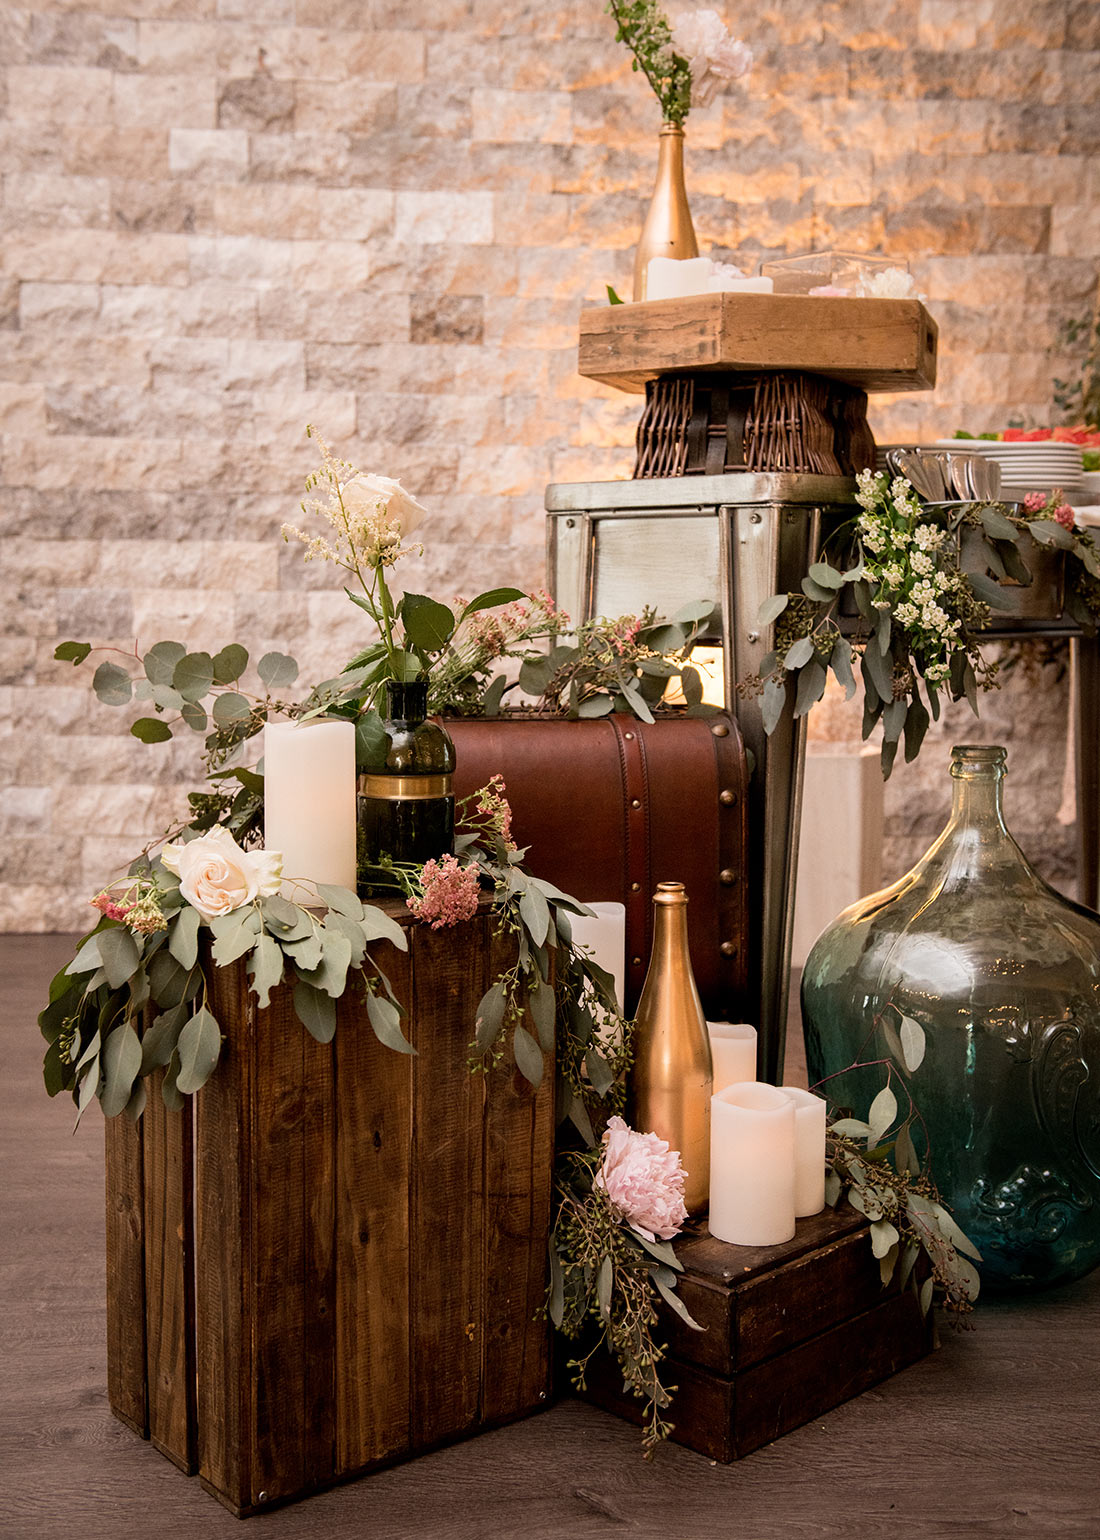 An image of the floral decorations decorating suits cases and vintage items for the Fete Venue Wedding